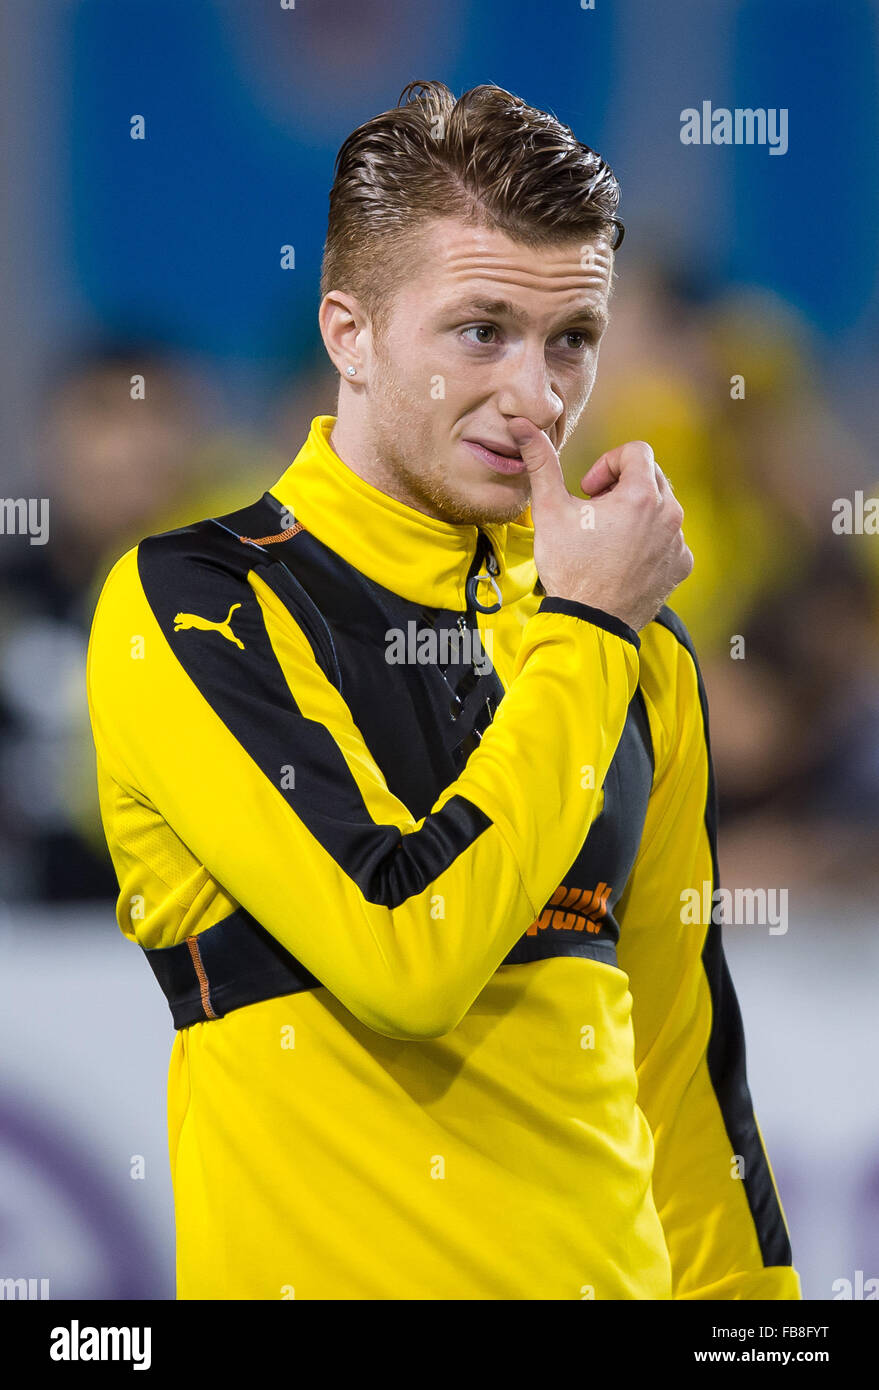 Marco Reus Hairstyle 2017 Inspiration Wodip